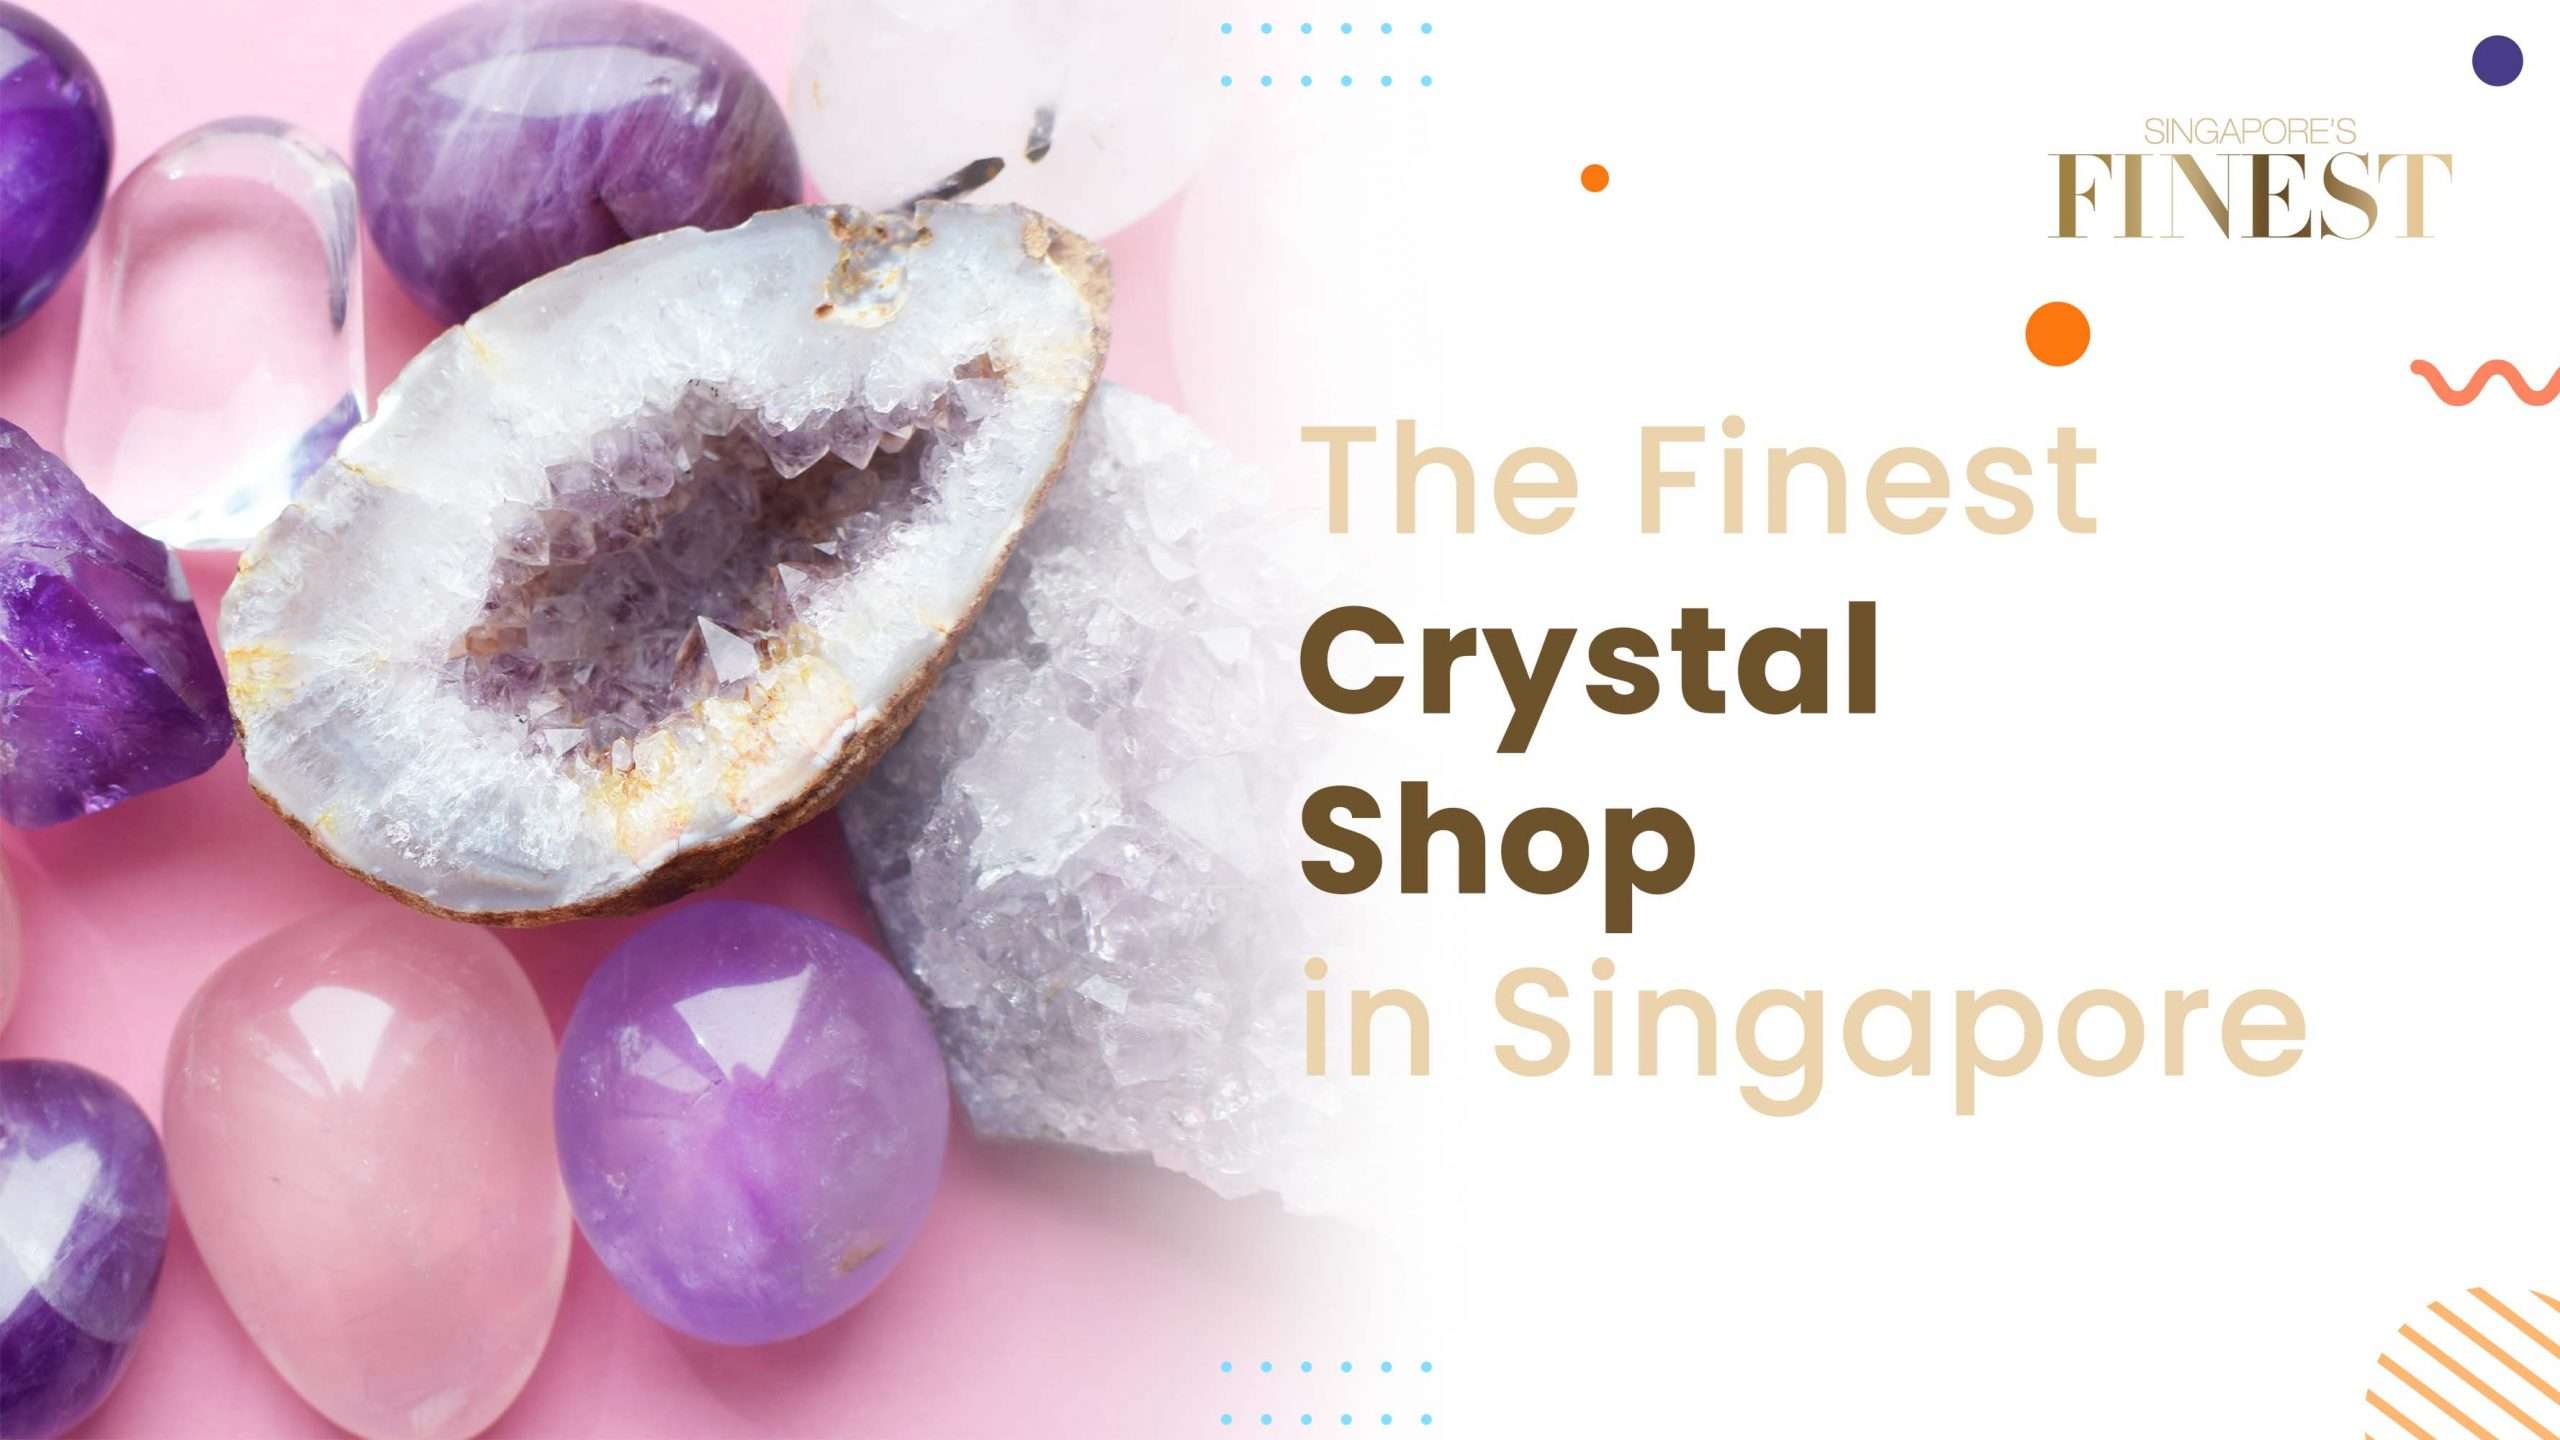 Finest Crystal Shop in Singapore